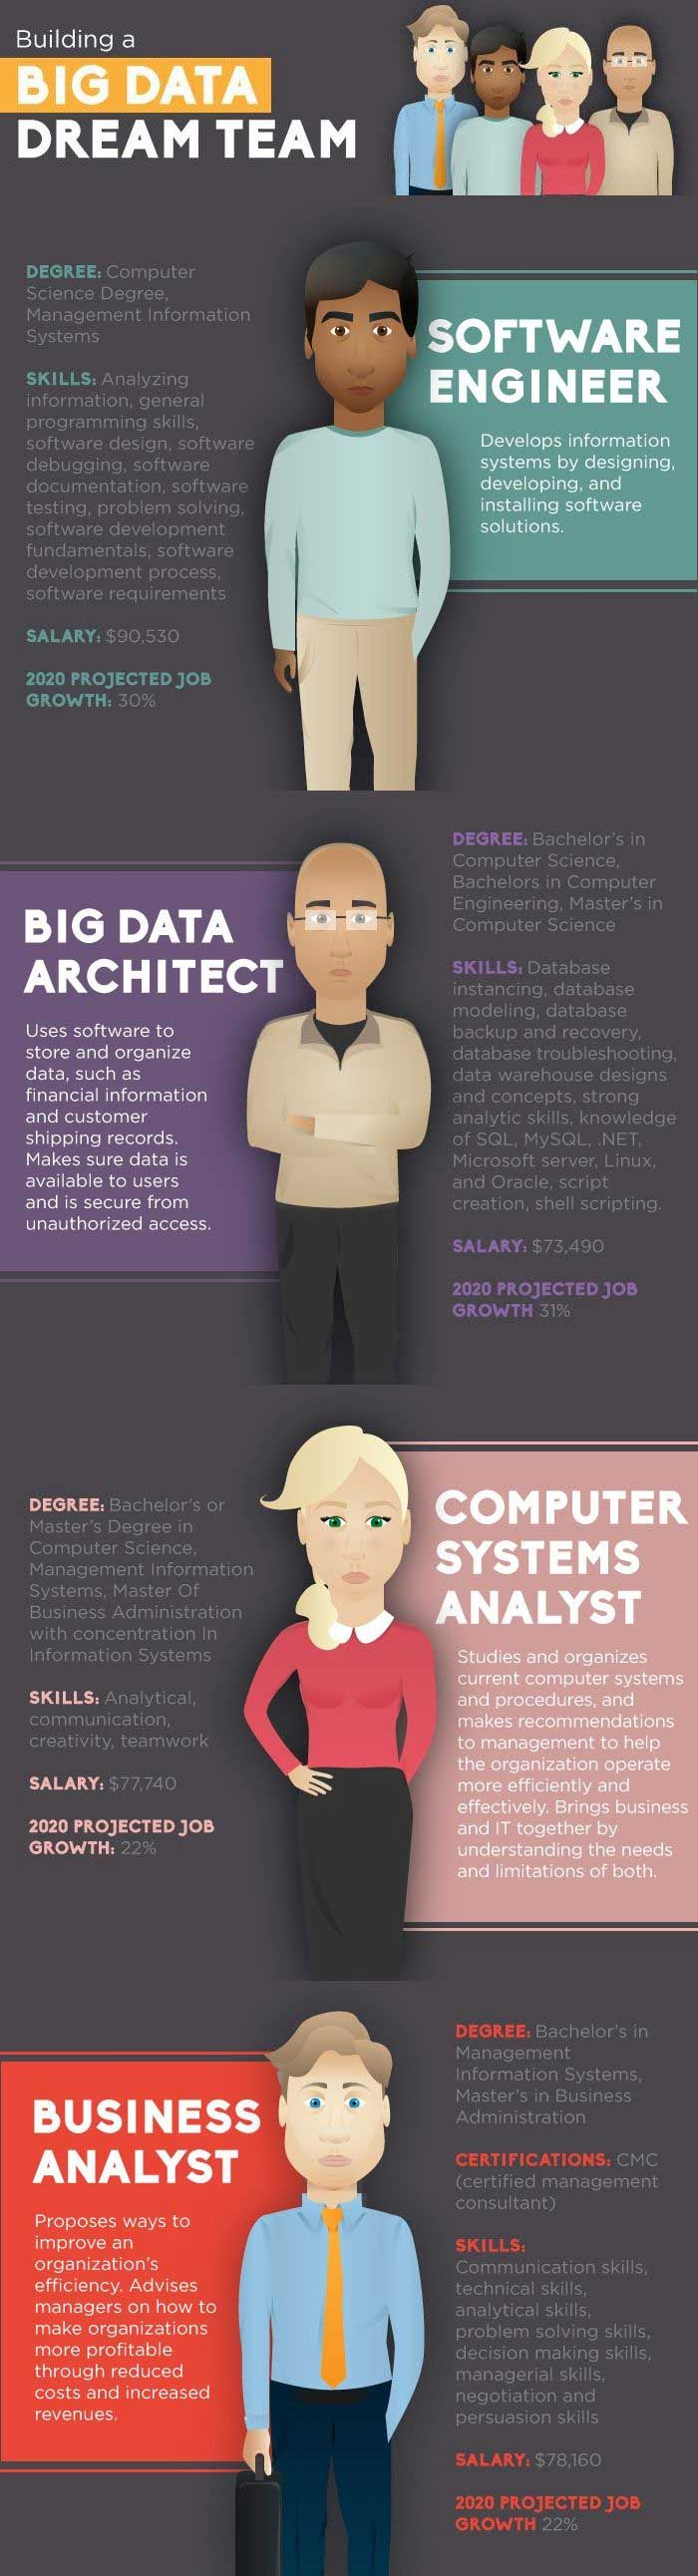 What does your bigdata dream team look like? Here are